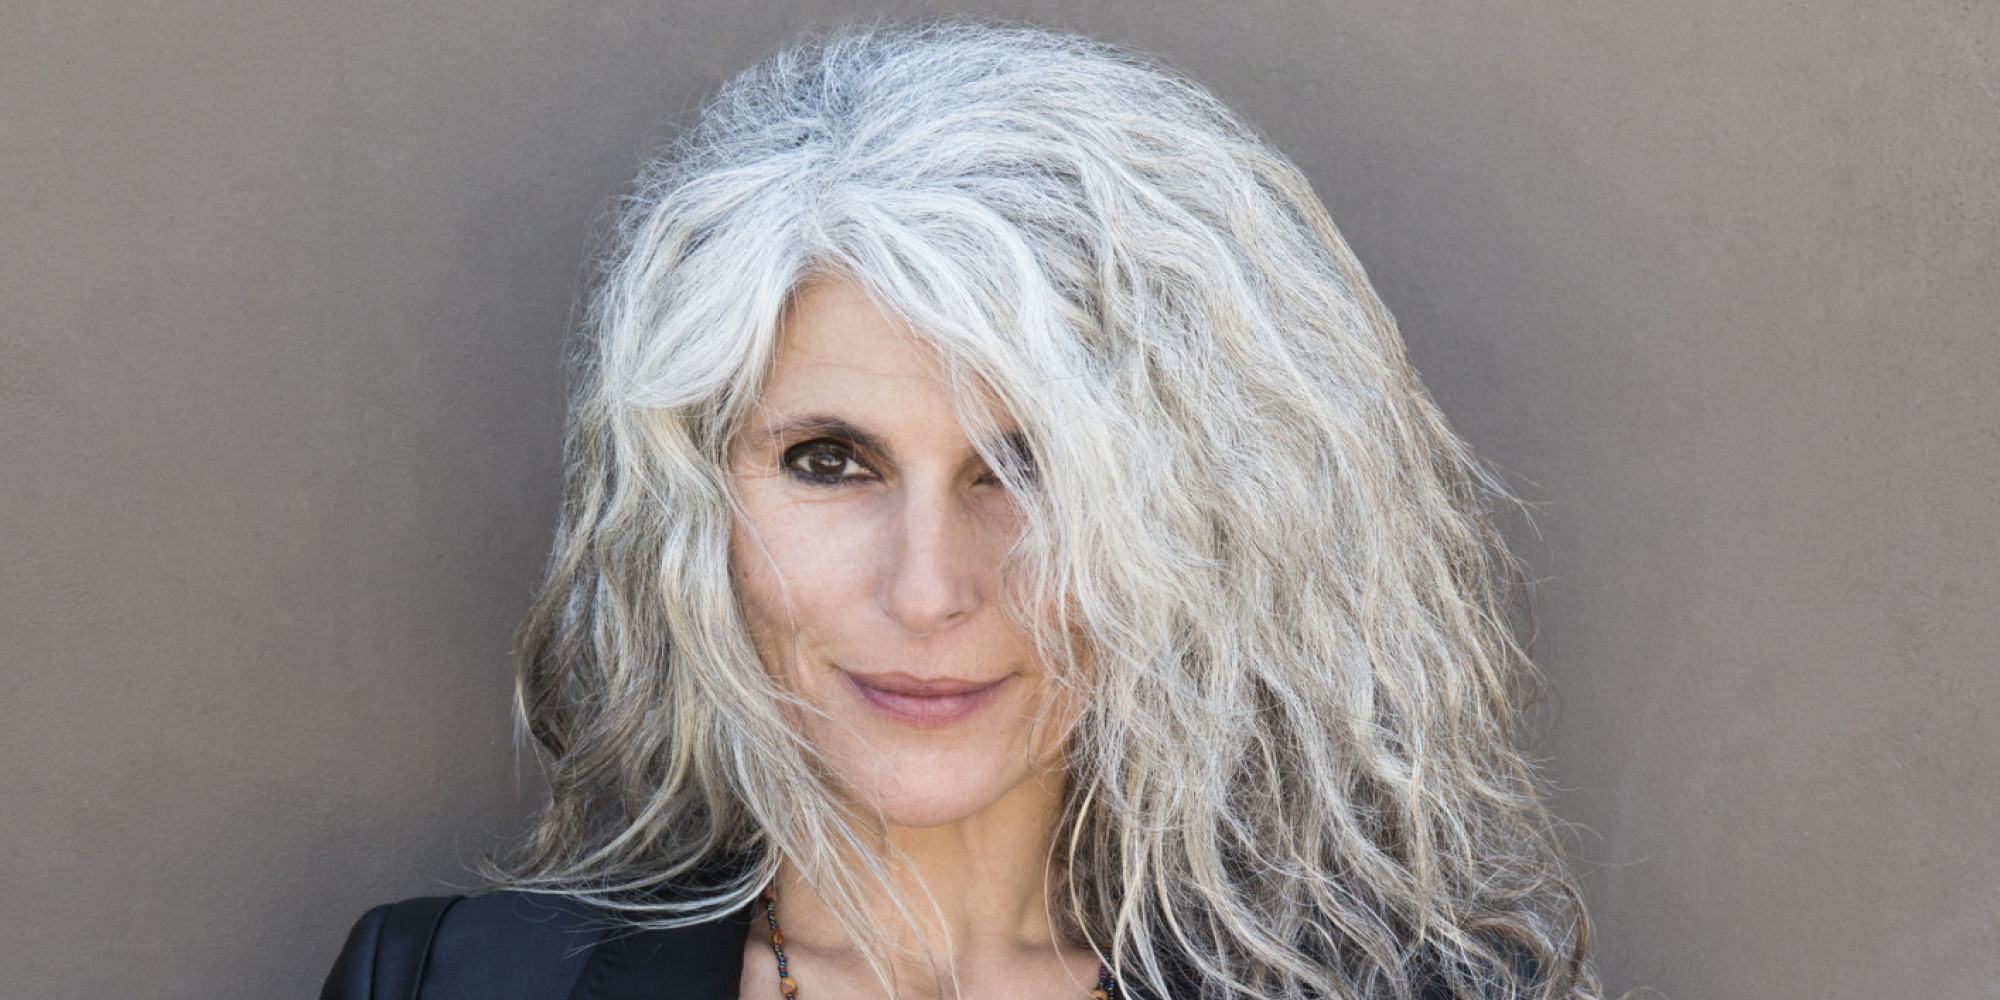 30 Stylish Gray Hair Styles For Short And Long Hair Intended For Short Haircuts For Coarse Gray Hair (View 6 of 25)